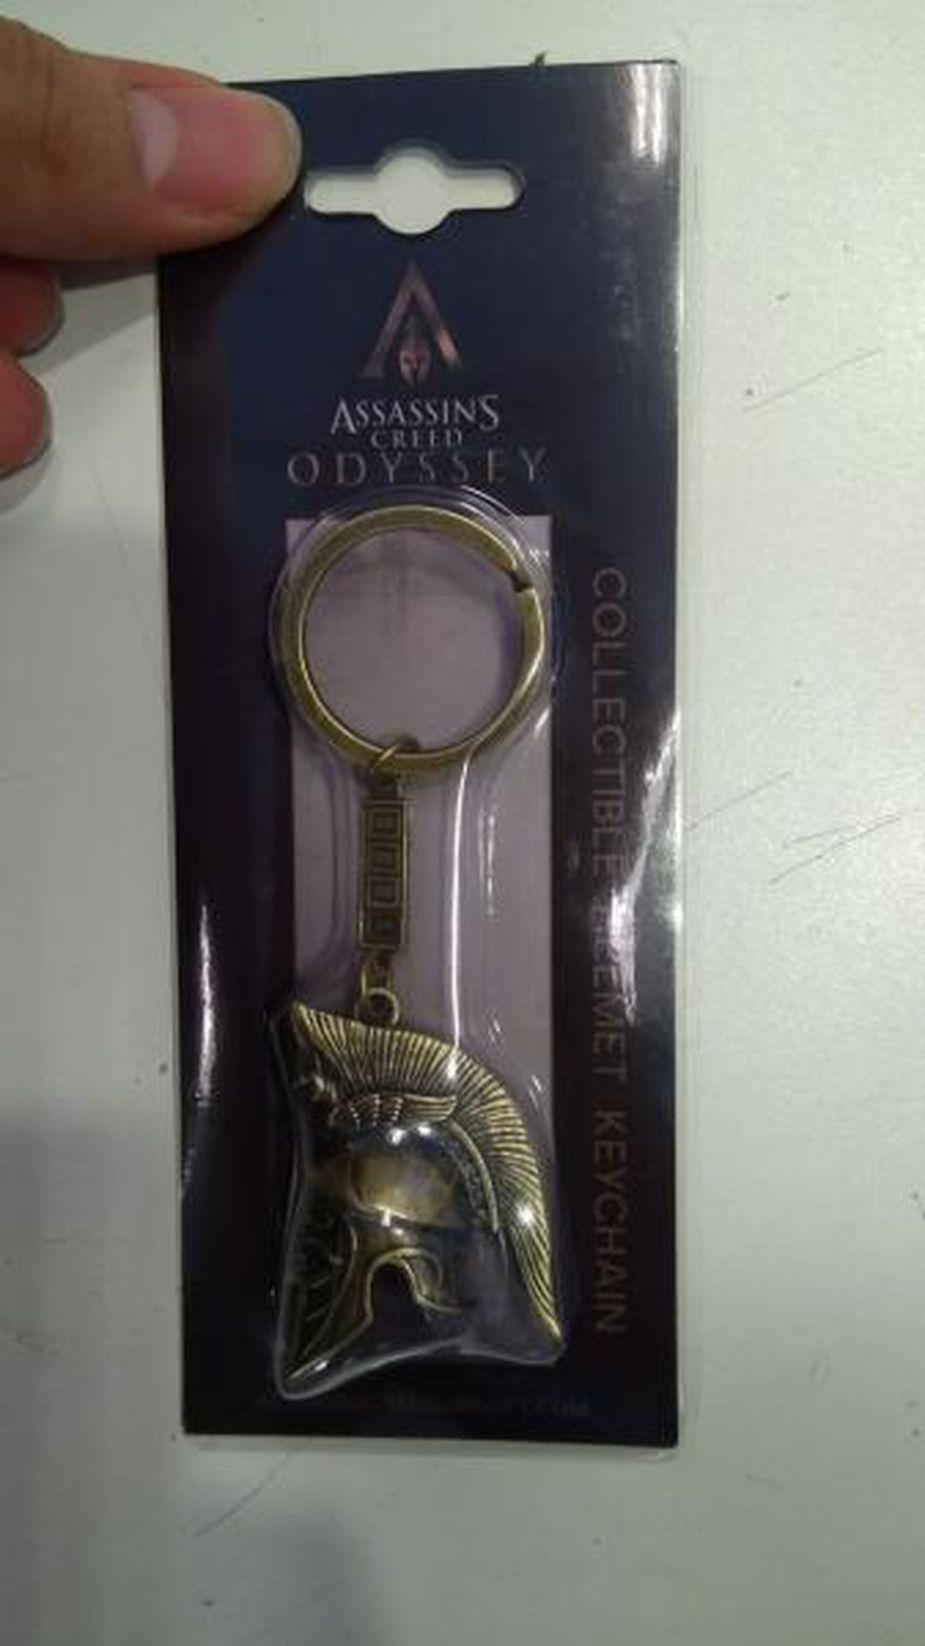 an Assassin's Creed Odyssey keychain